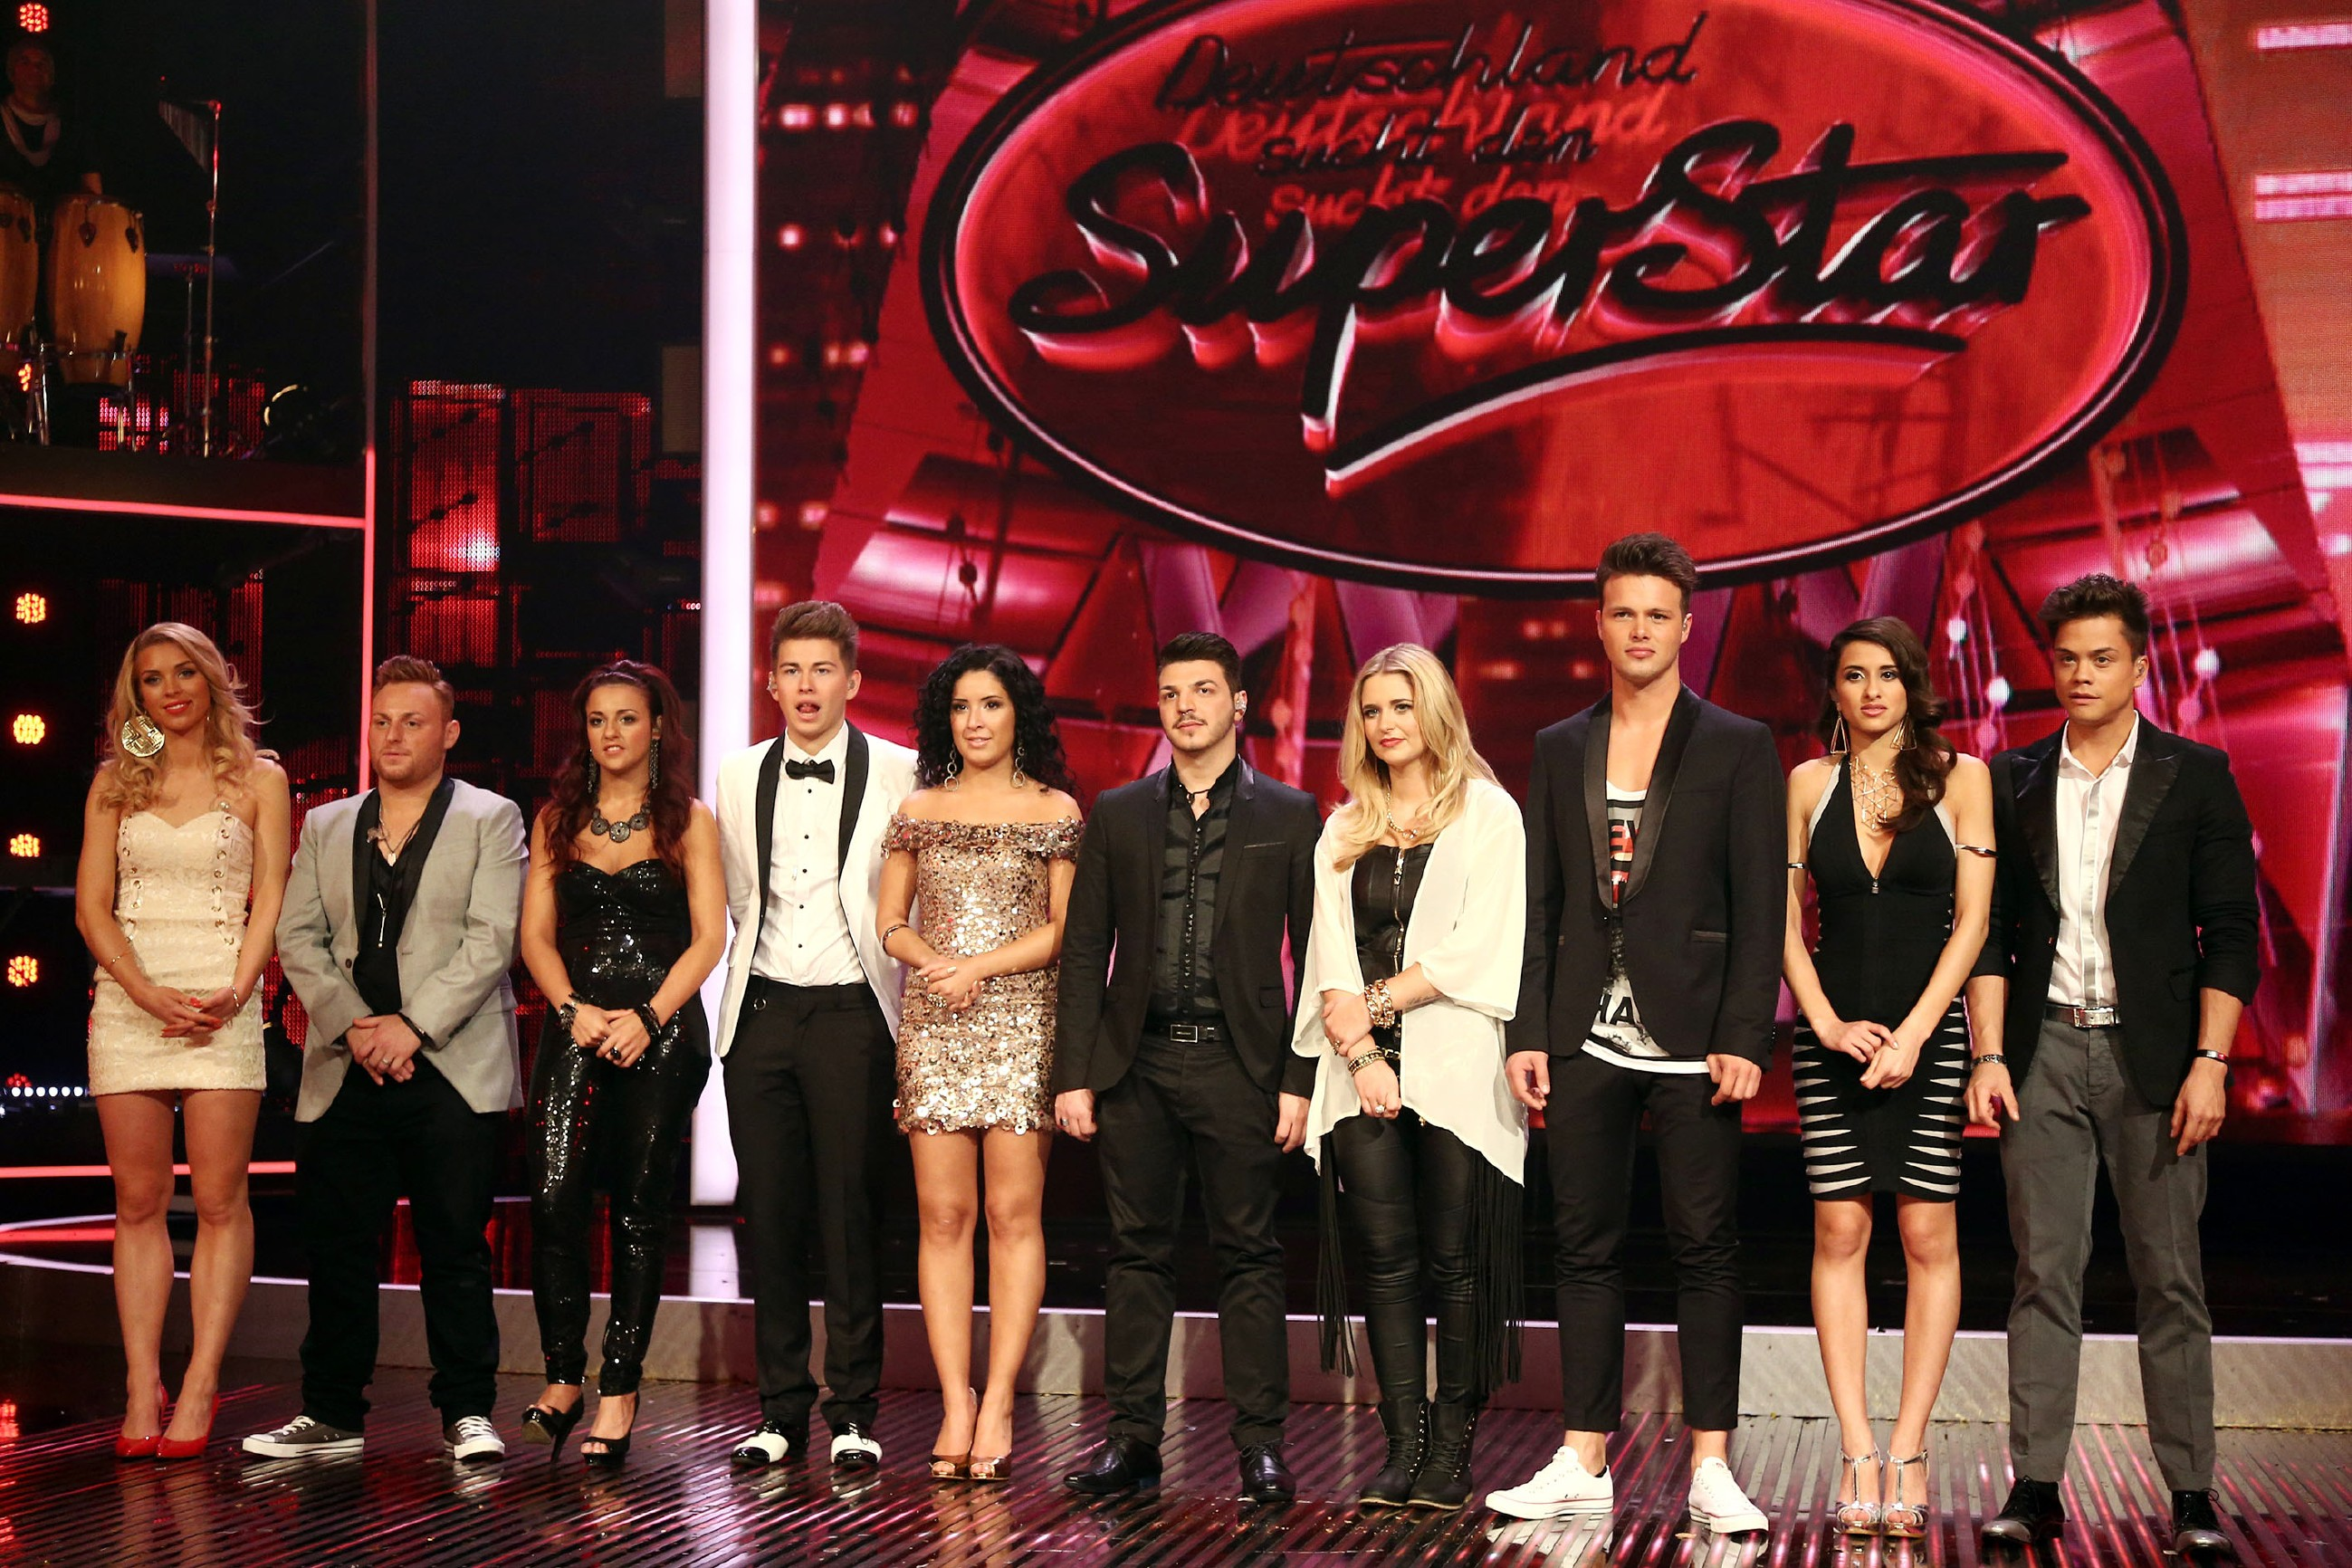 DSDS 2014 Liveshow 2 -Die Top-10 am Anfang der Show